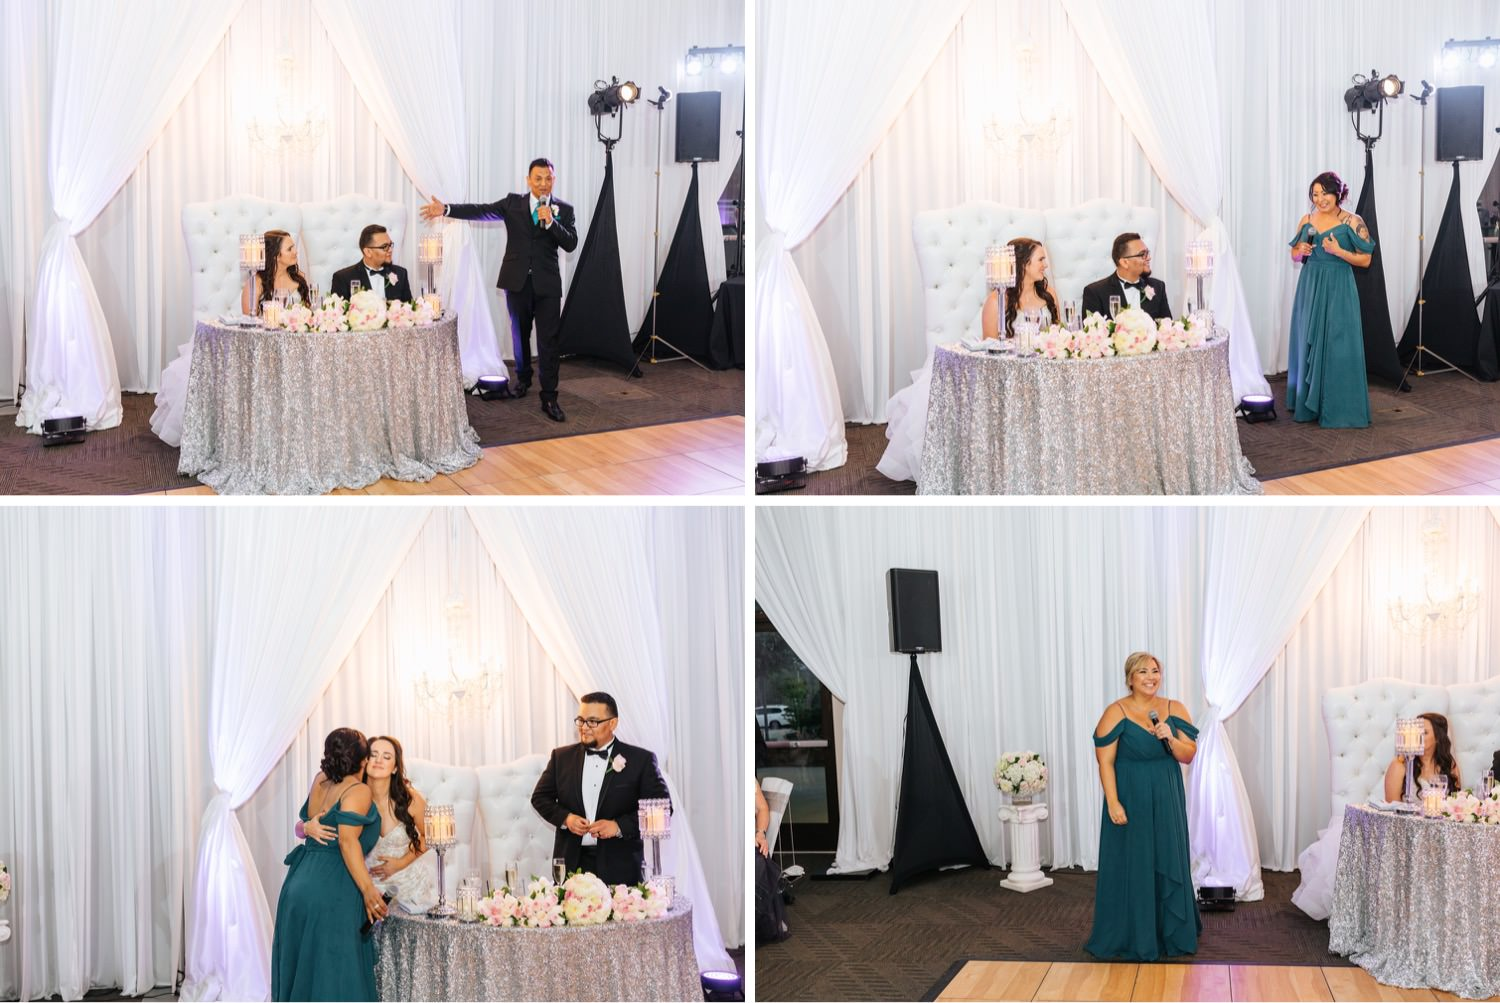 Wedding Toasts - Wedding Reception at Chino Hills Community Center - Chino Hills Wedding Photographer - https://brittneyhannonphotography.com